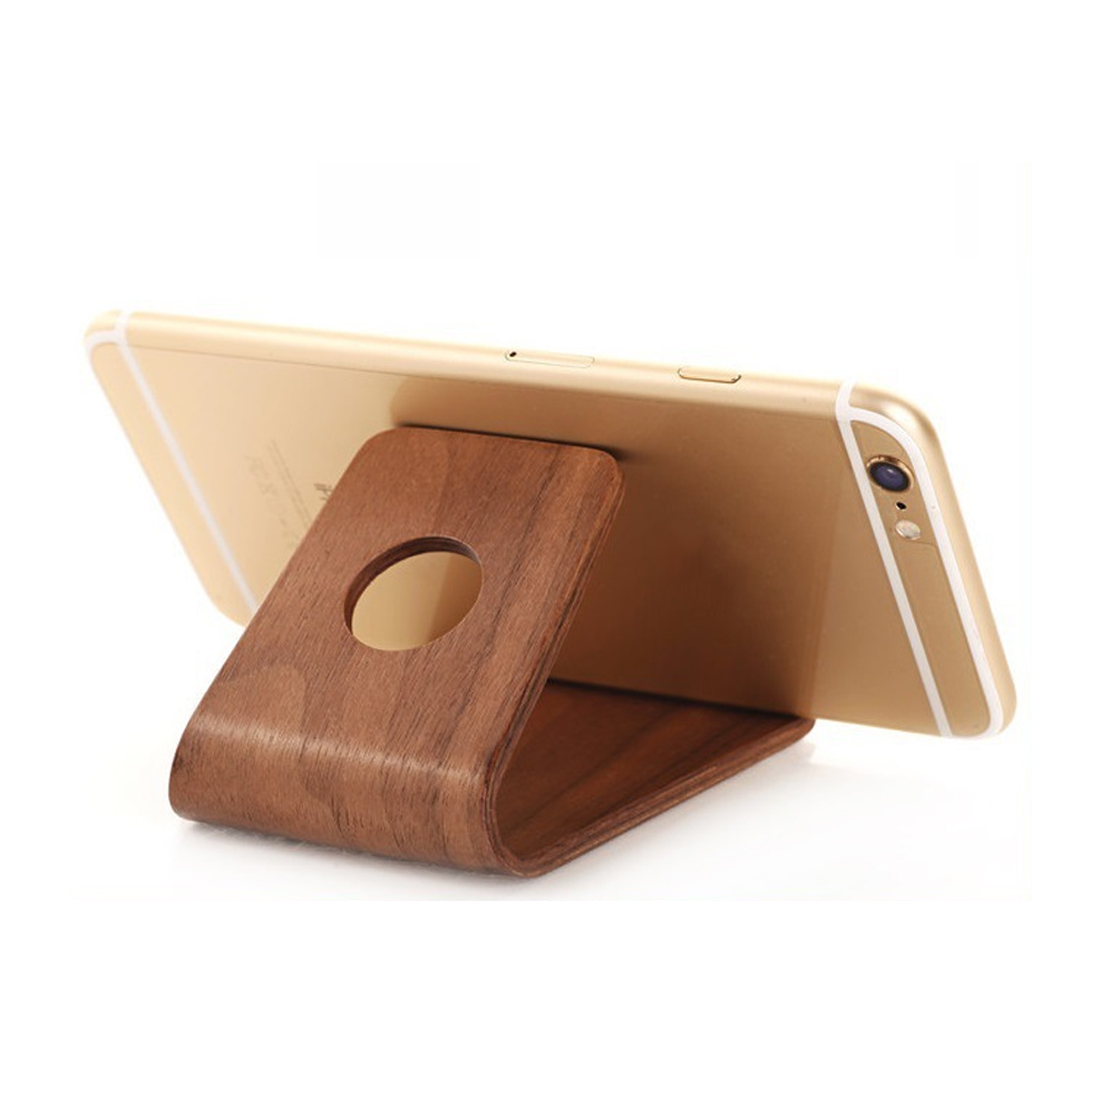 New Universal Stand Phone Holder Bamboo Wood Stand Holder For IPad Wooden Stand For IPhone Watch SE 6 6S For Samsung S6 S7 Note5